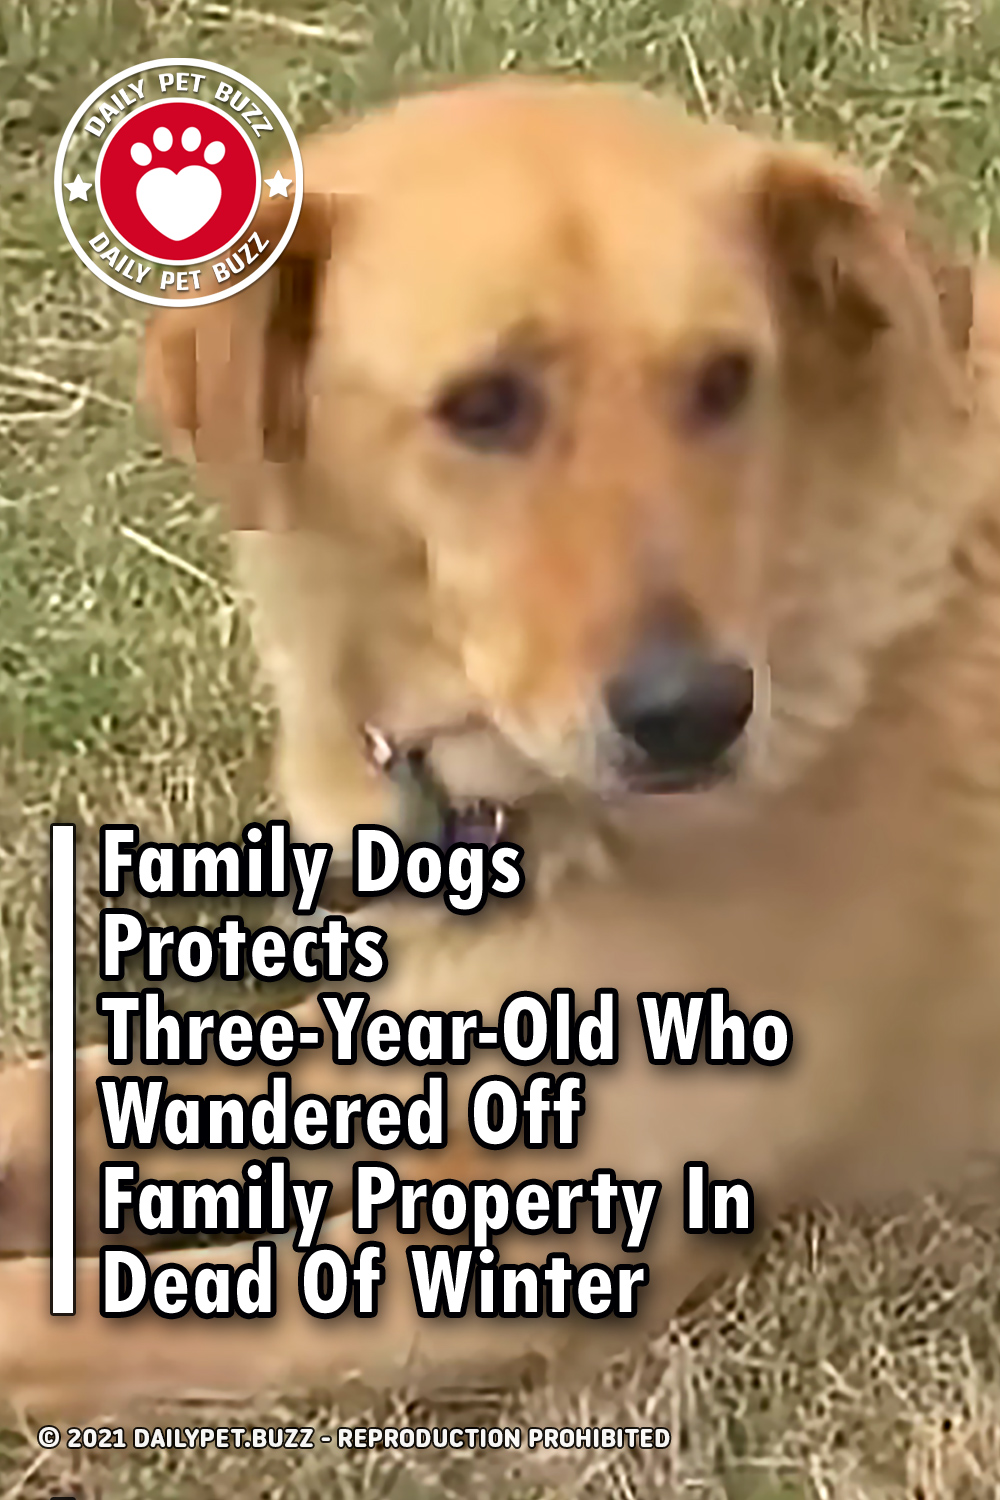 Family Dogs Protects Three-Year-Old Who Wandered Off Family Property In Dead Of Winter